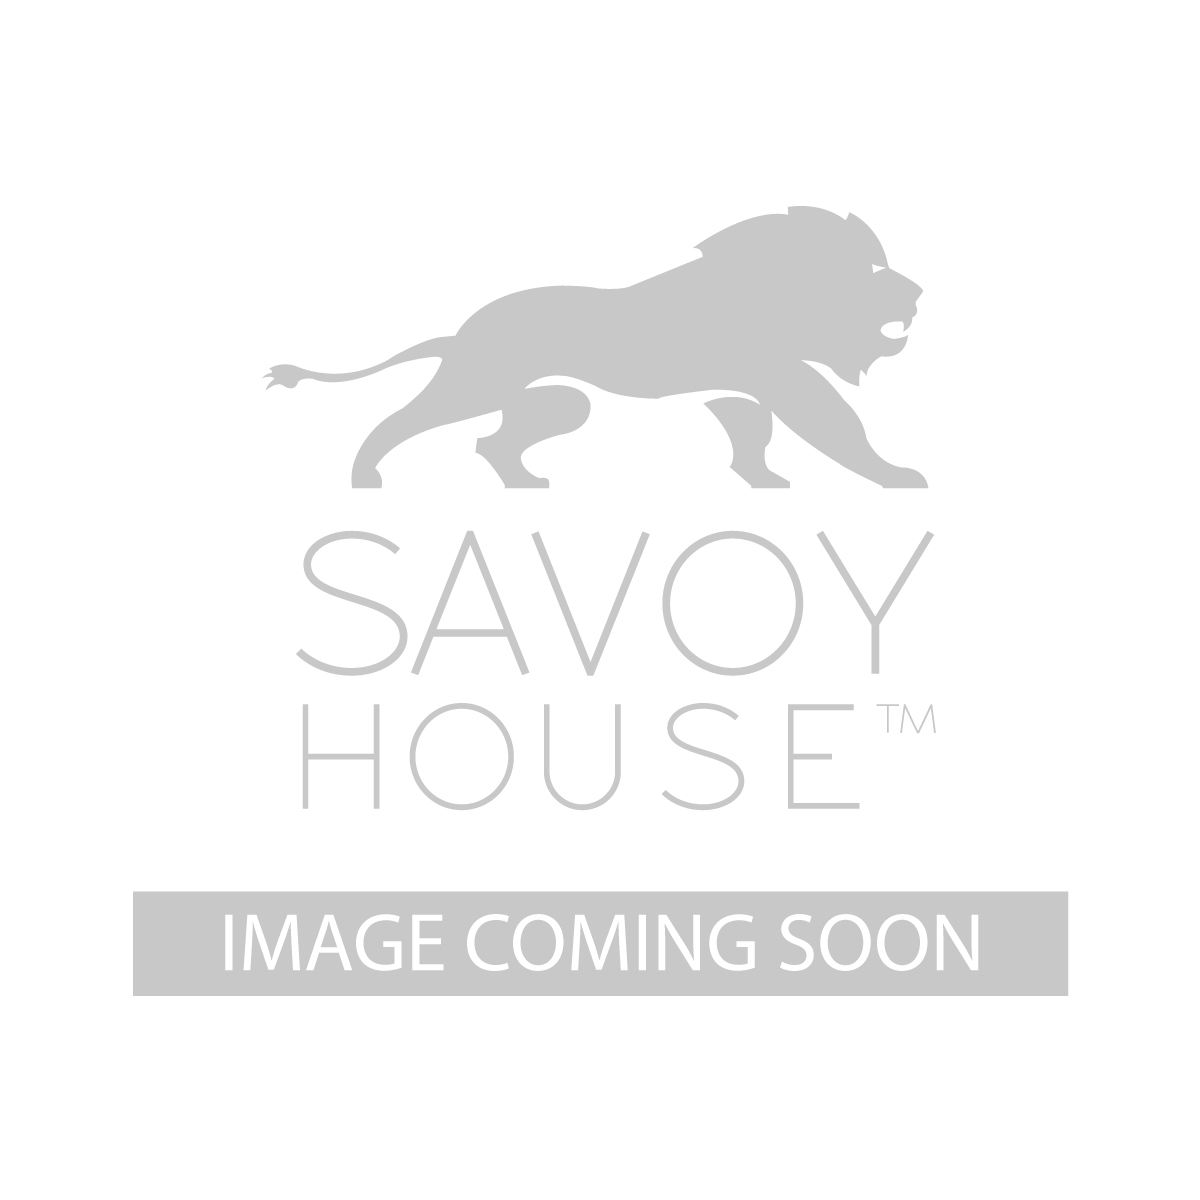 Fashionable Welch Light Outdoor Chandelier Welch Light Outdoor Chandelier By Savoy House Savoy House Lighting Instructions Savoy House Lighting Phone Number houzz-03 Savoy House Lighting